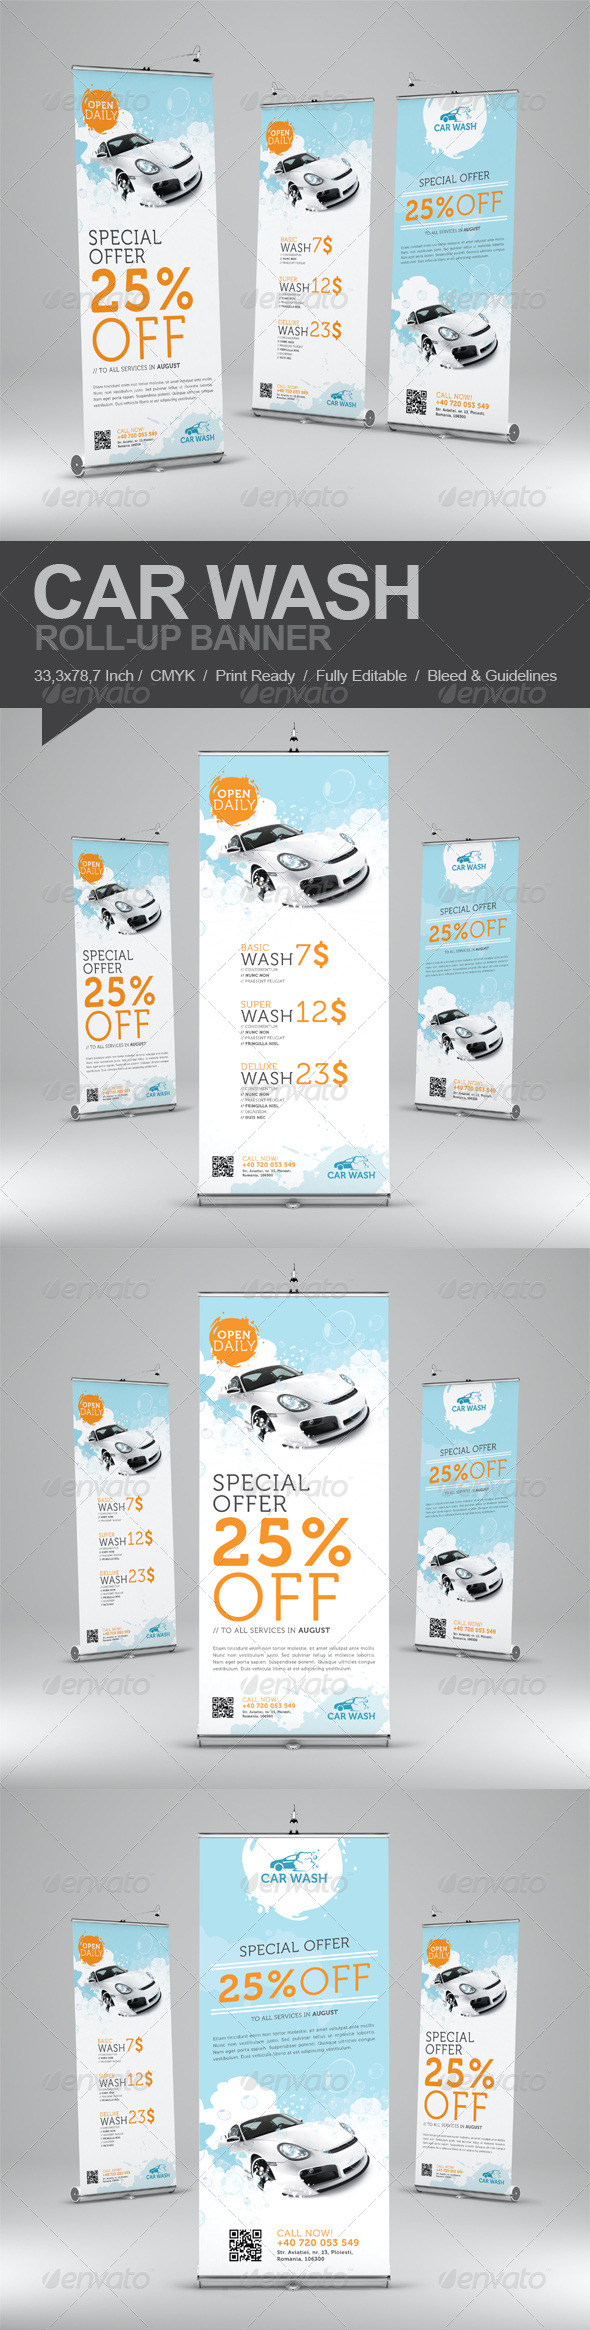 Car Wash Roll-Up Banner - Signage Print Templates